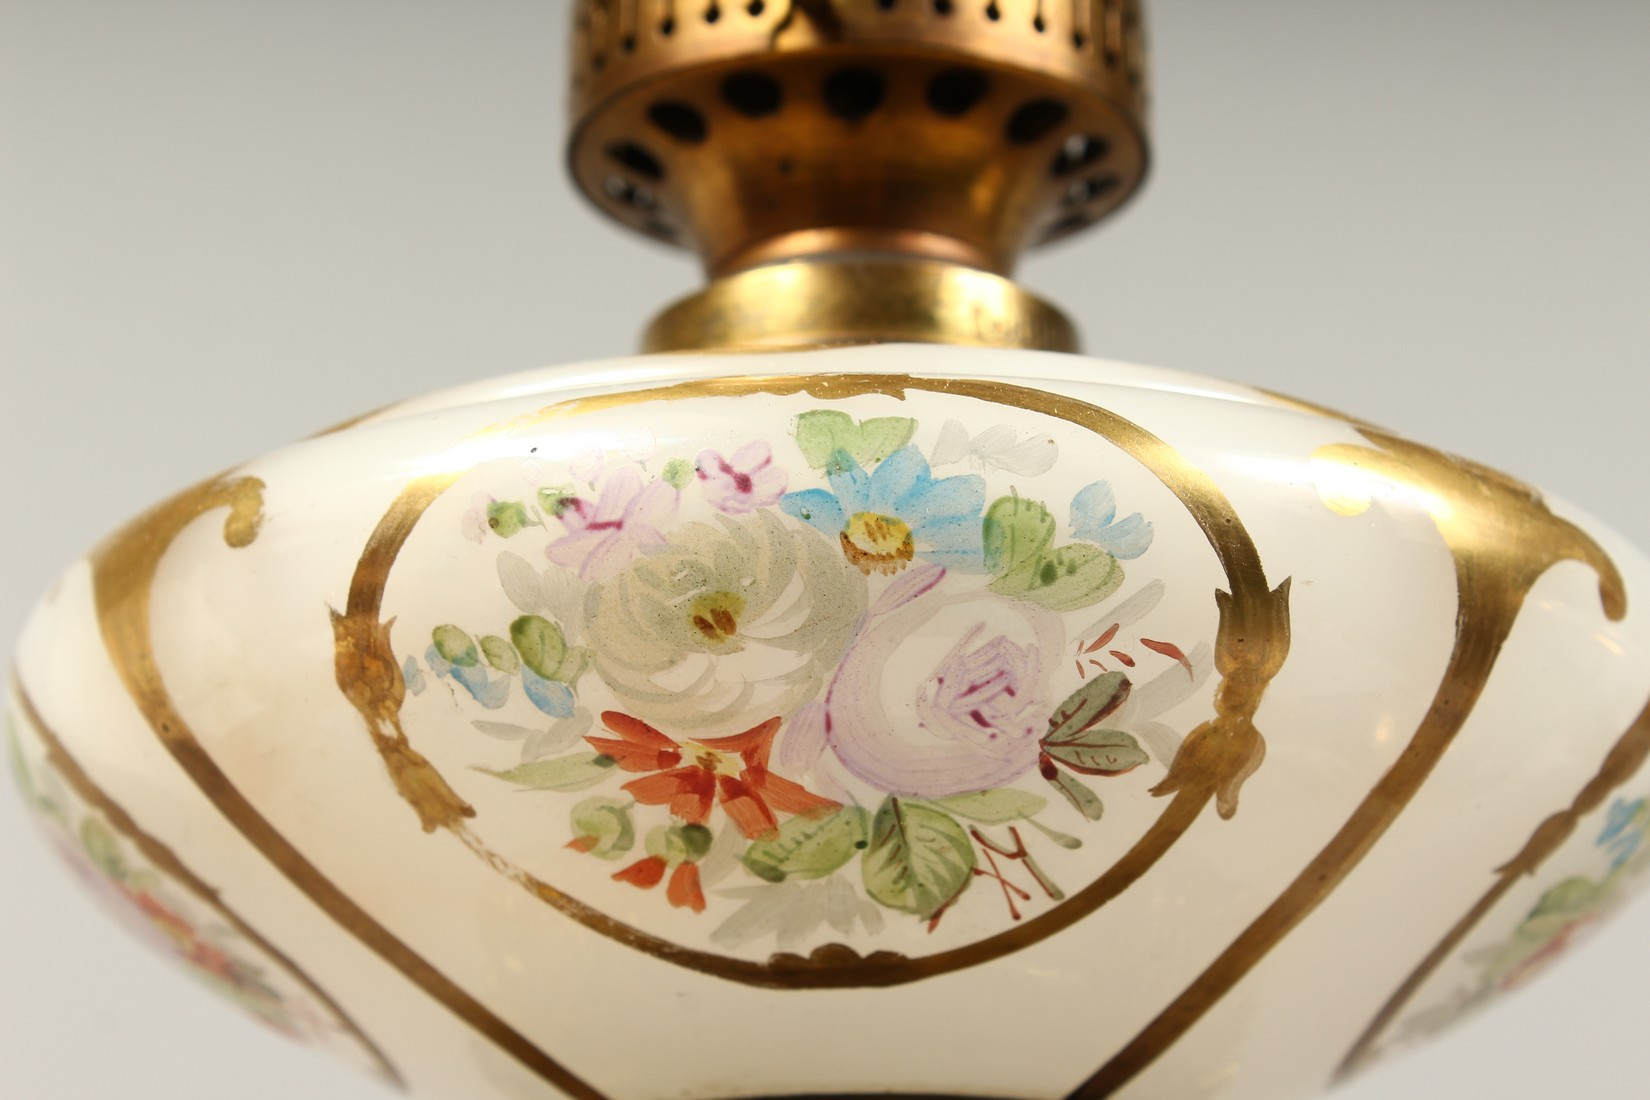 A SUPERB PAIR OF 19TH CENTURY FRENCH PORCELAIN AND GILT BRONZE LAMPS ON STANDS, painted with - Image 17 of 24